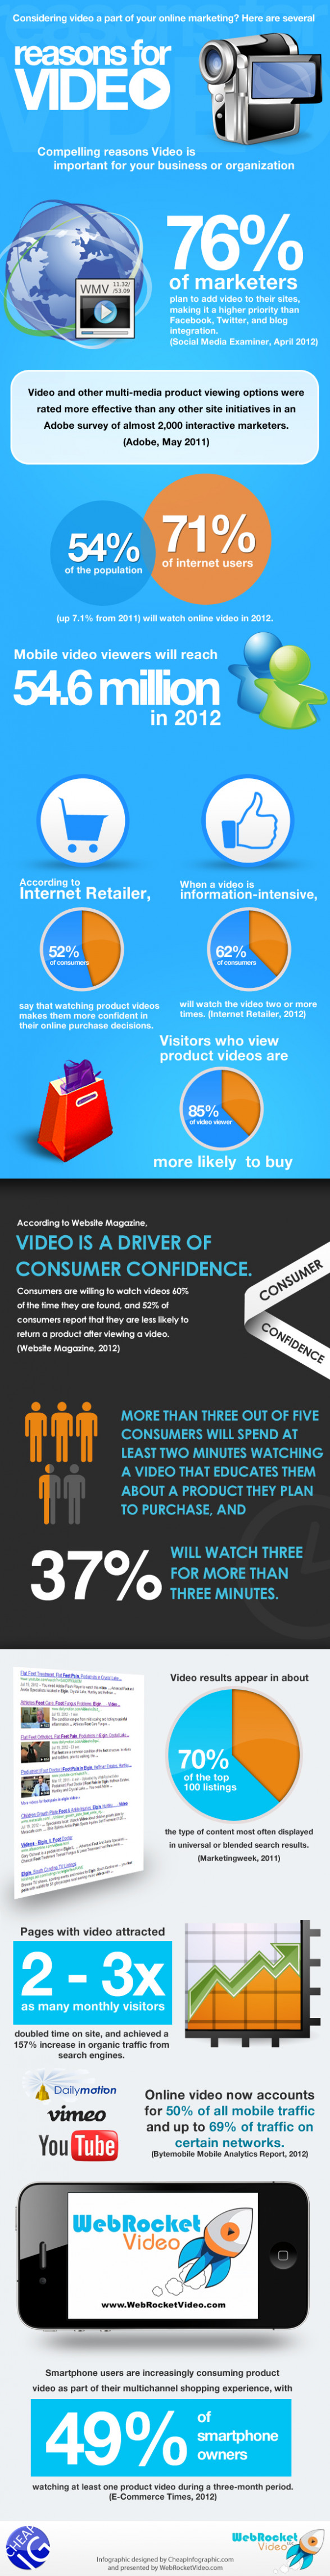 Gain Competitive Advantage with Video Marketing [INFOGRAPHIC]